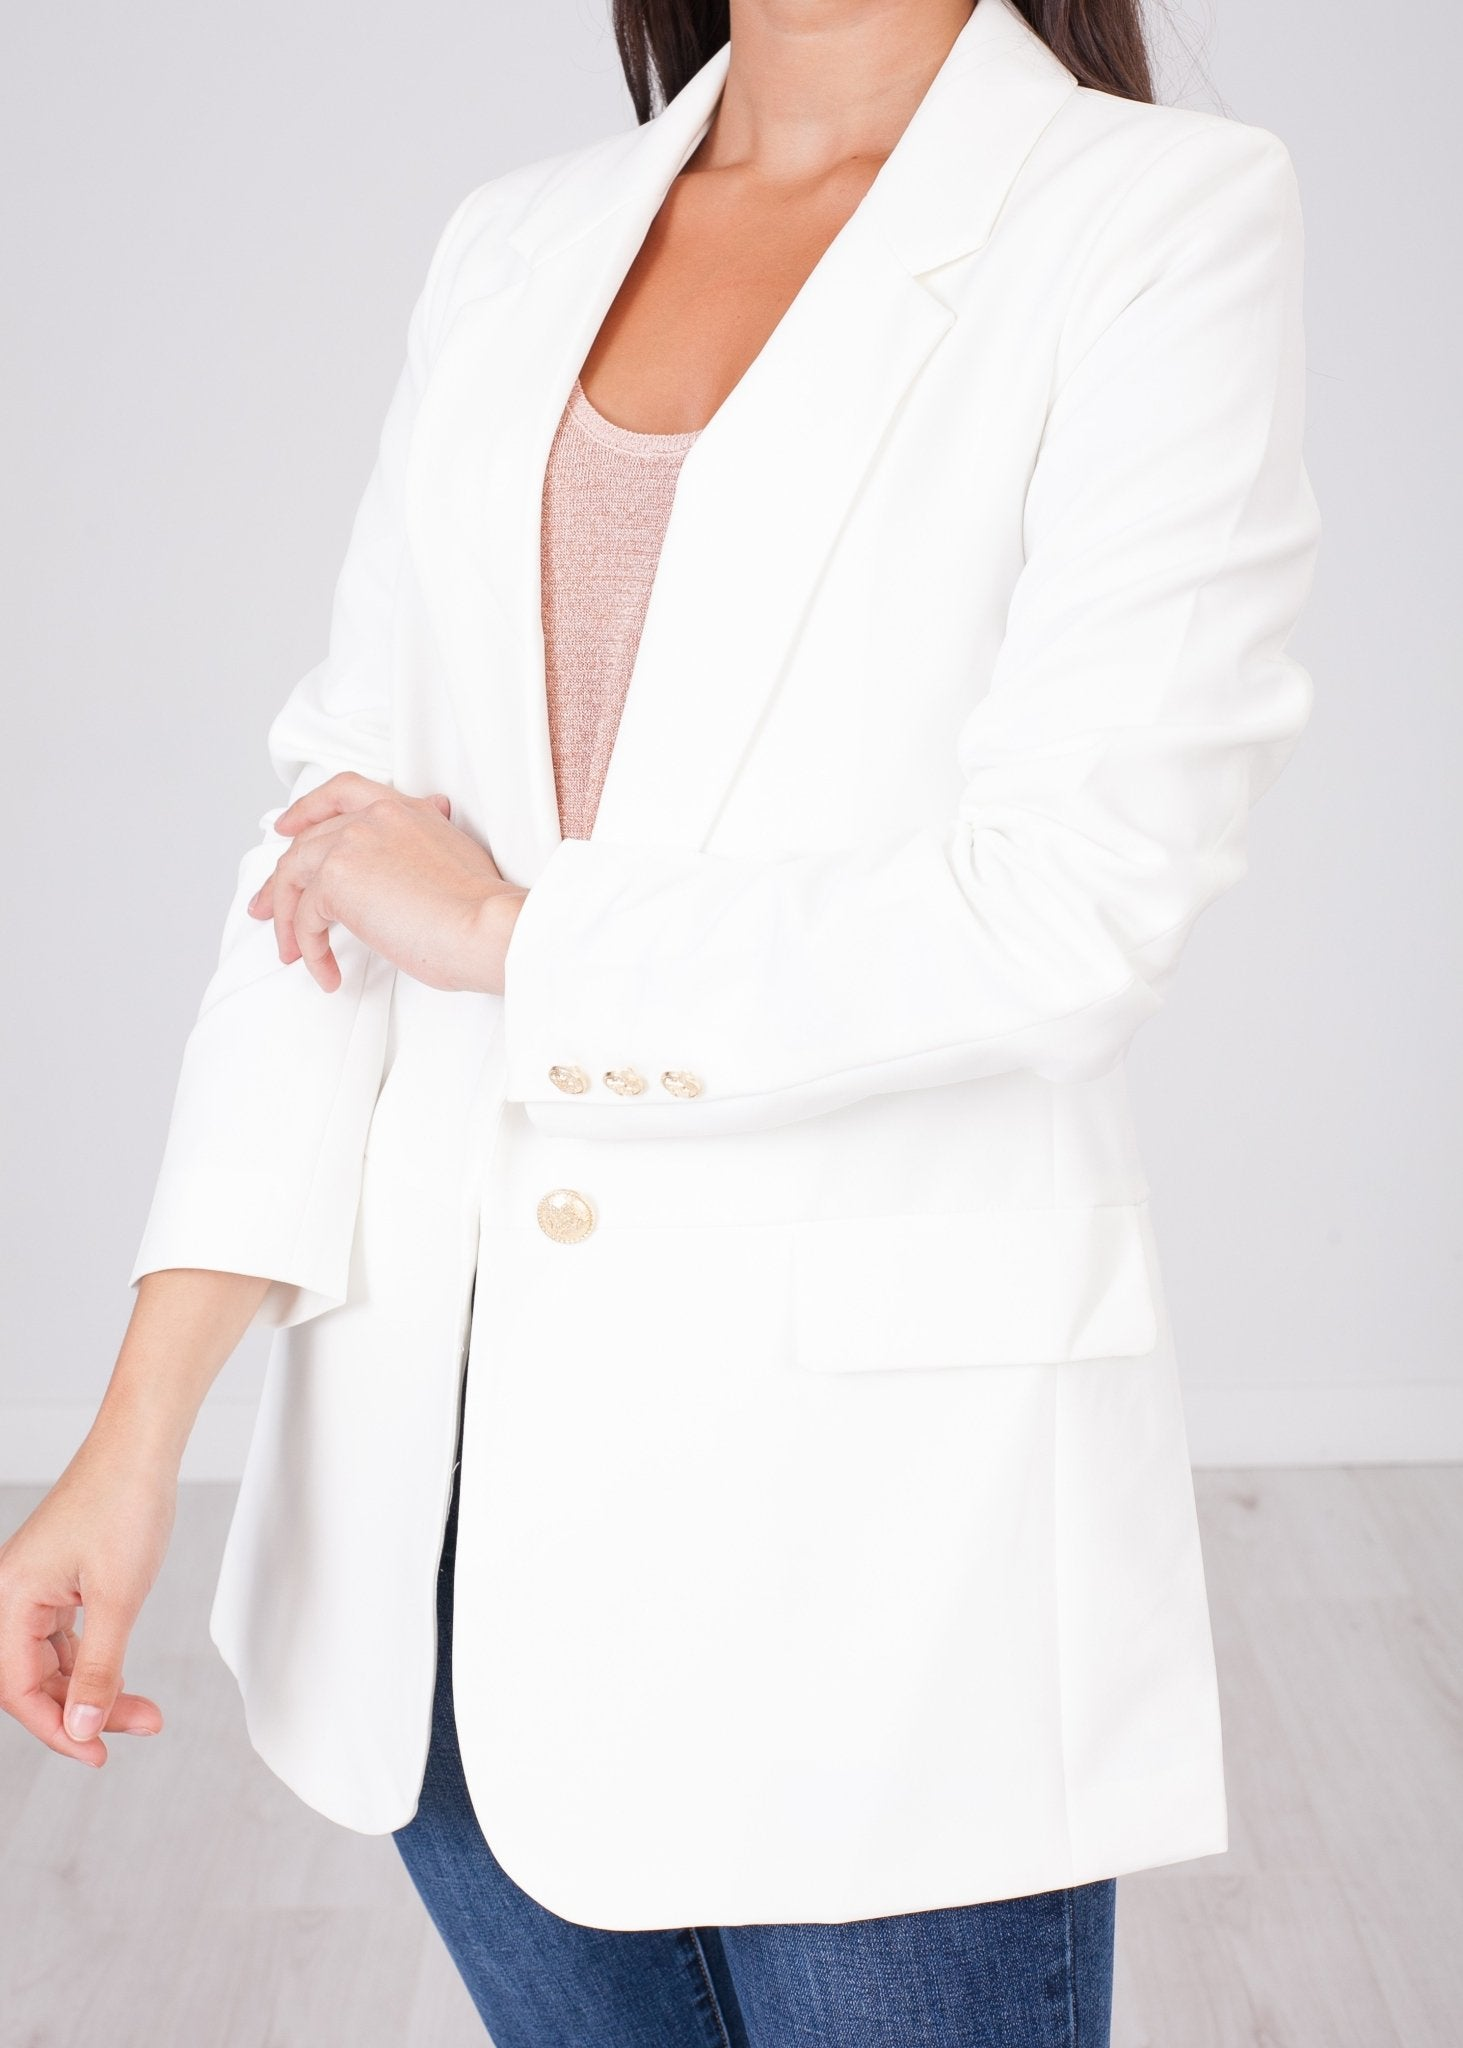 Arabella White Boyfriend Blazer - The Walk in Wardrobe